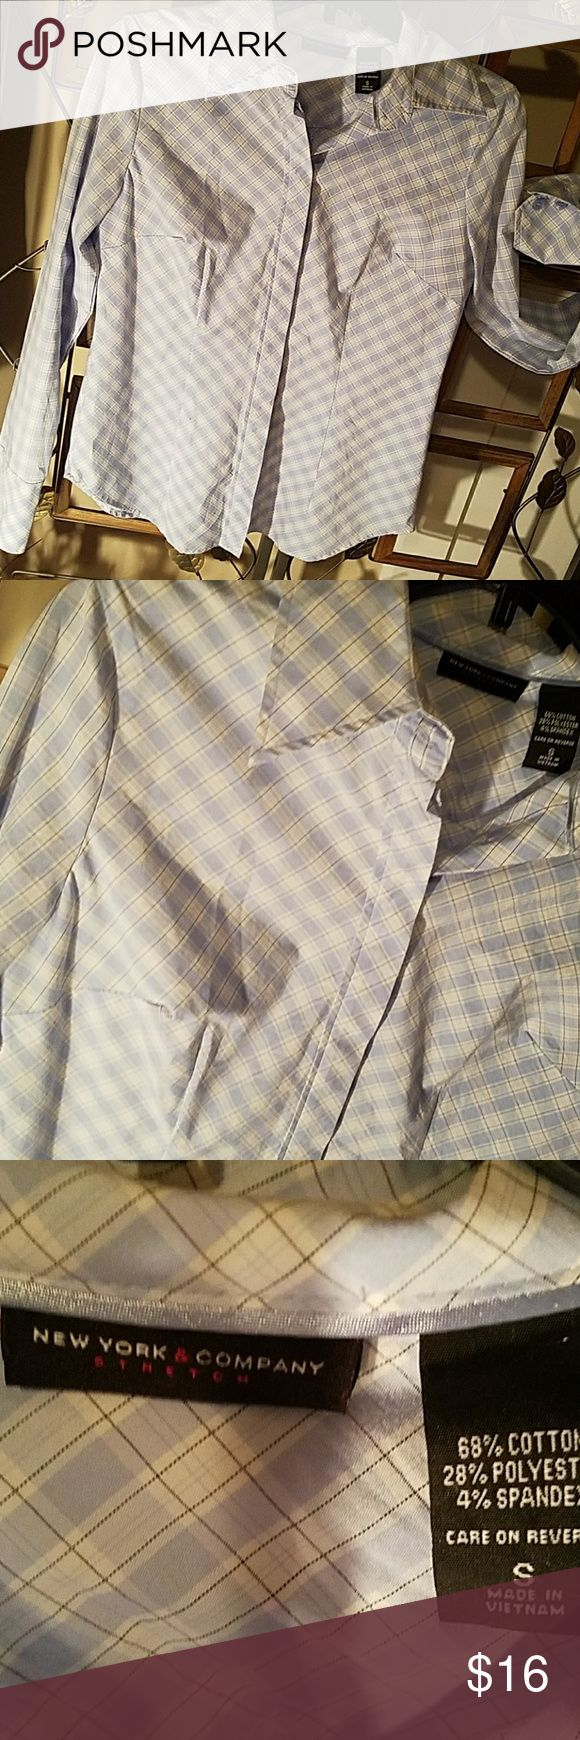 NY & COMPANY tailor made shirt size Small The perfect tailor made shirt for business or fun. Light blue and white are the dominant colors.  Buttons down front are hidden just an overall well made, classic wardrobe must have.  In great condition seemingly like new. Gently worn history. New York & Company Tops Button Down Shirts